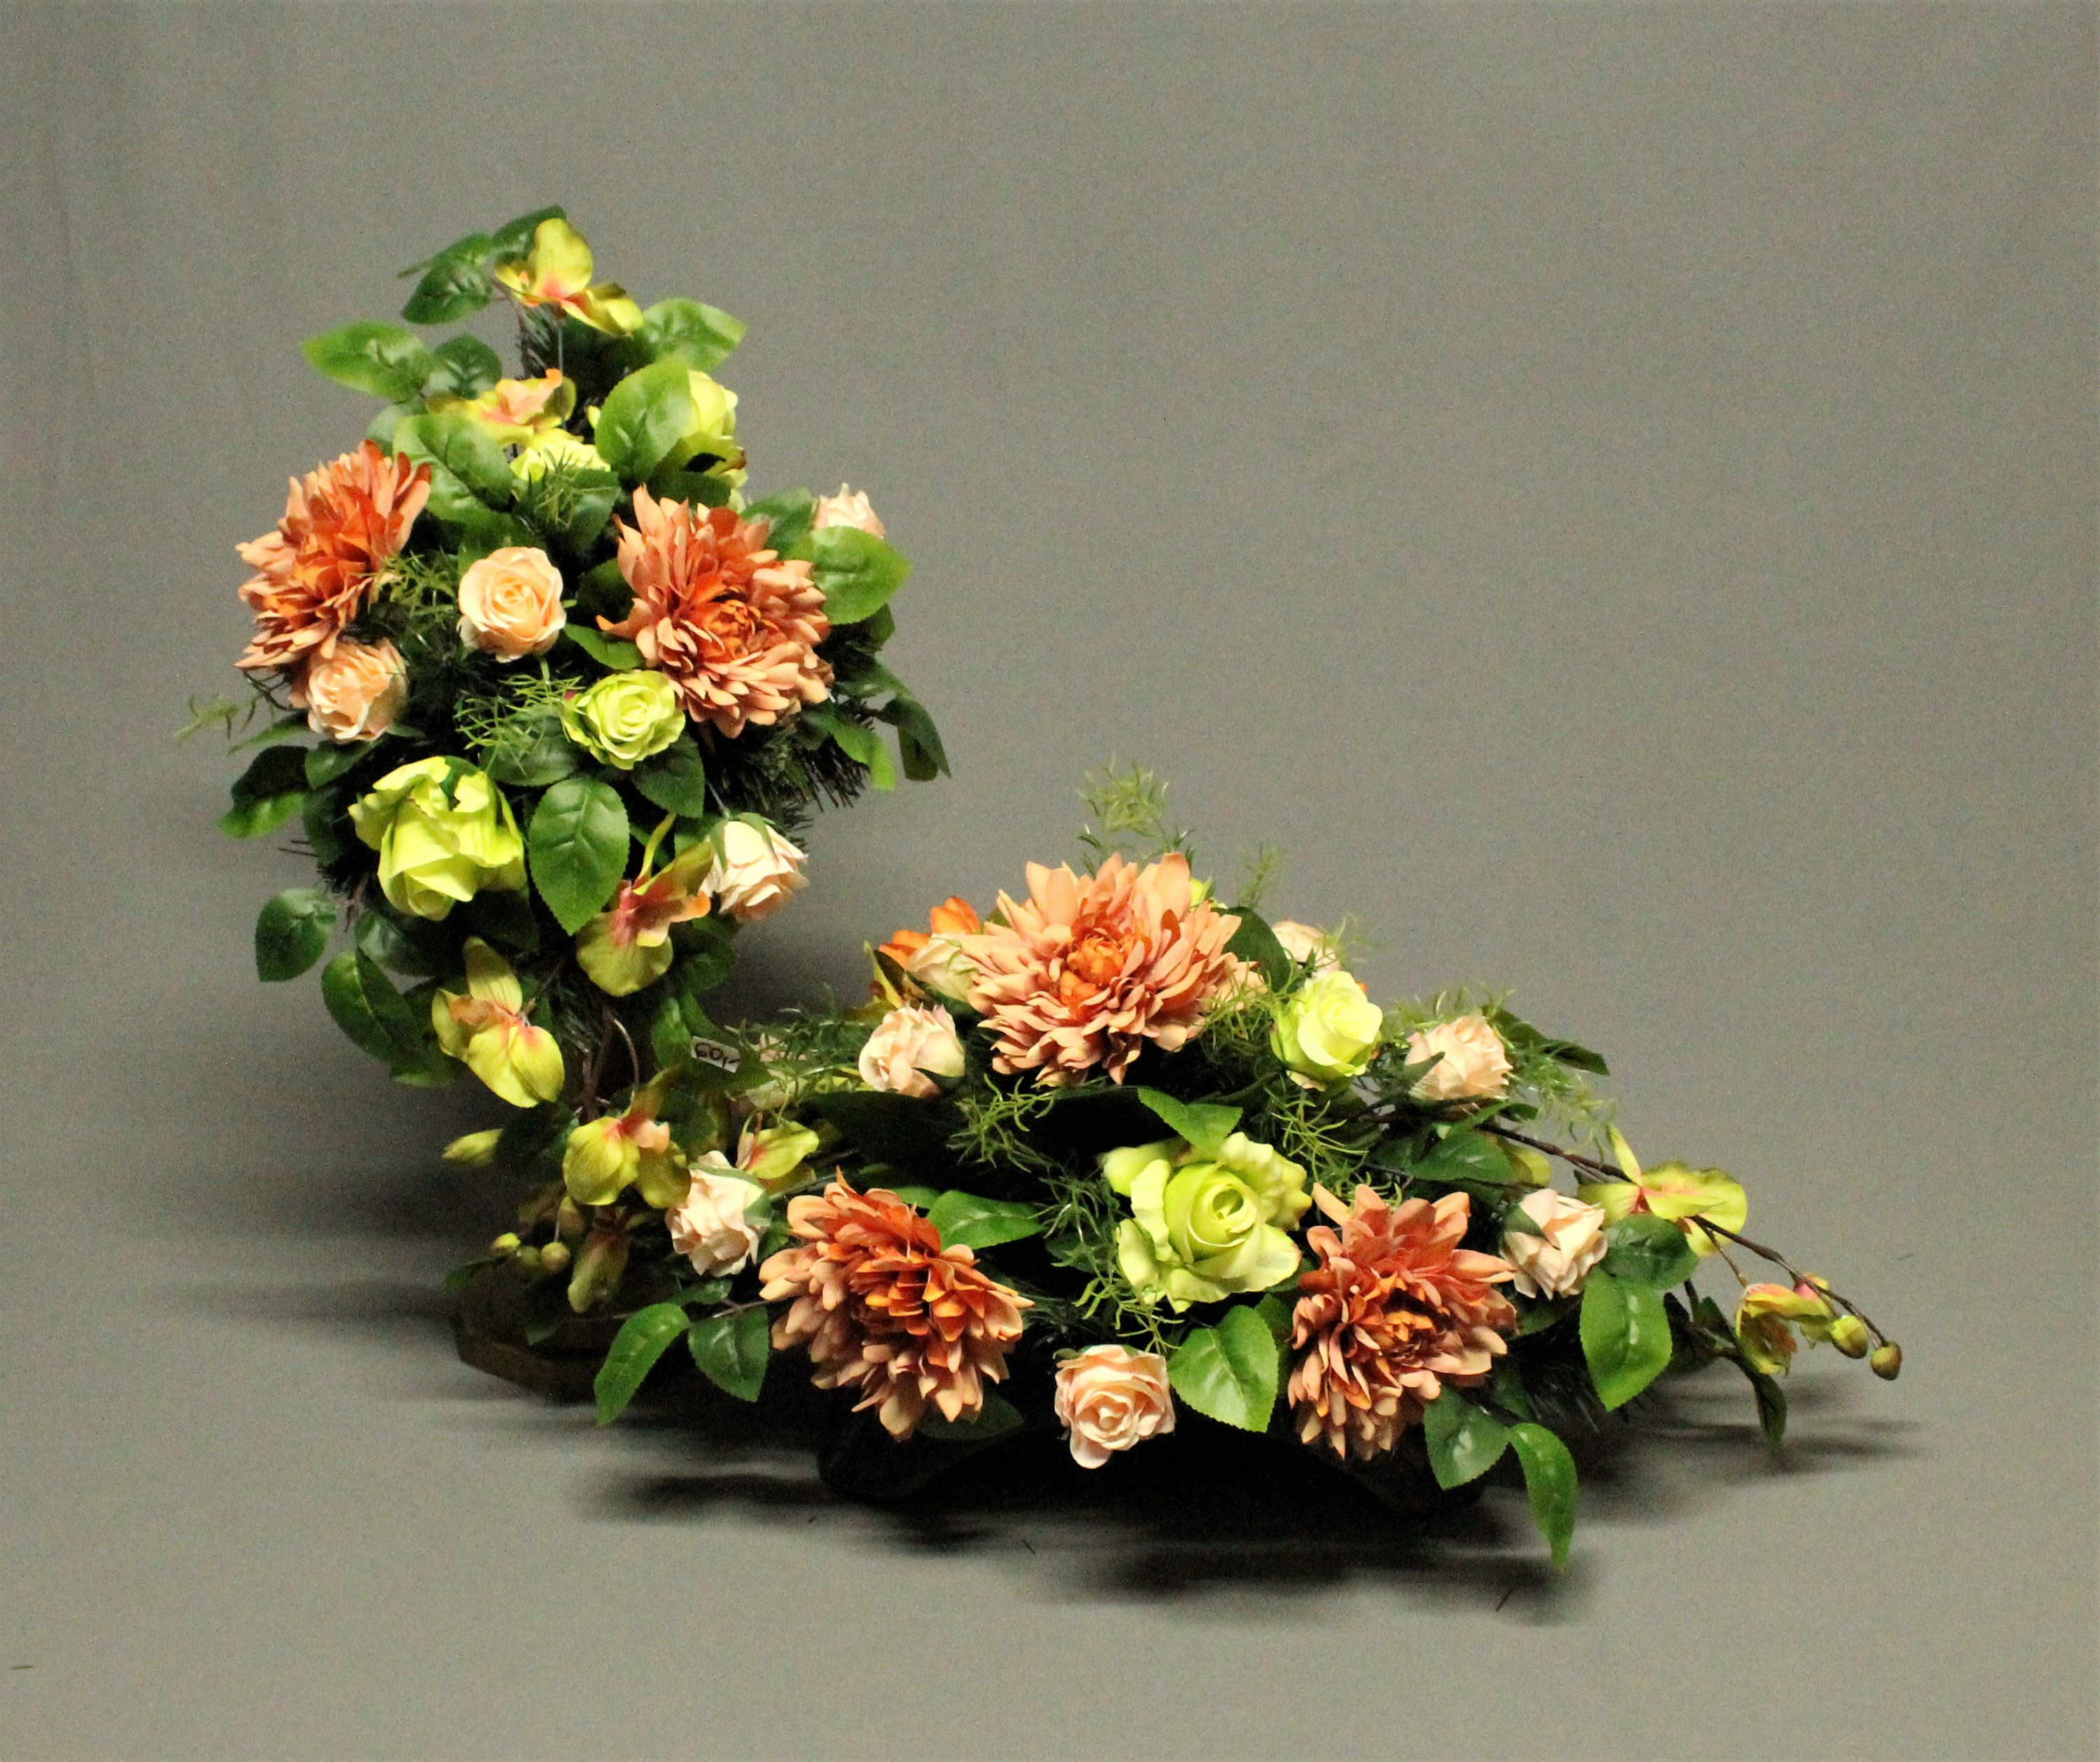 Tombstone Decoration Artificial Flowers Decoration For The Monument Tomb Reed Cemetery Decorations Feast Of The Dead Mourning Decorations Cemetery Decorations Artificial Flowers Flowers